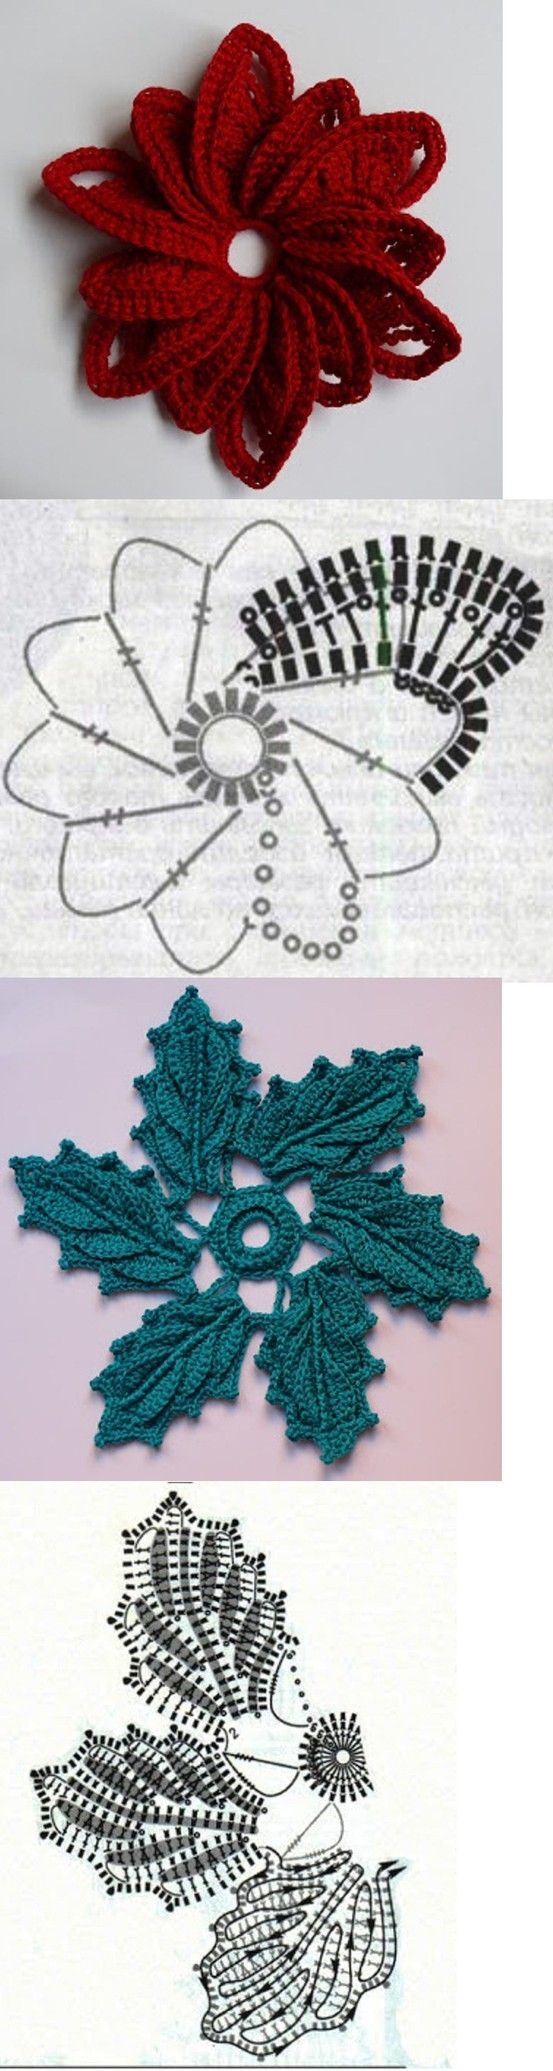 Just sew a button on your beanie or anywhere you want and then you can choose the flower applique of the color matching your outfit and/or of the shape you want and button it on the beanie! genius crochet! :-)